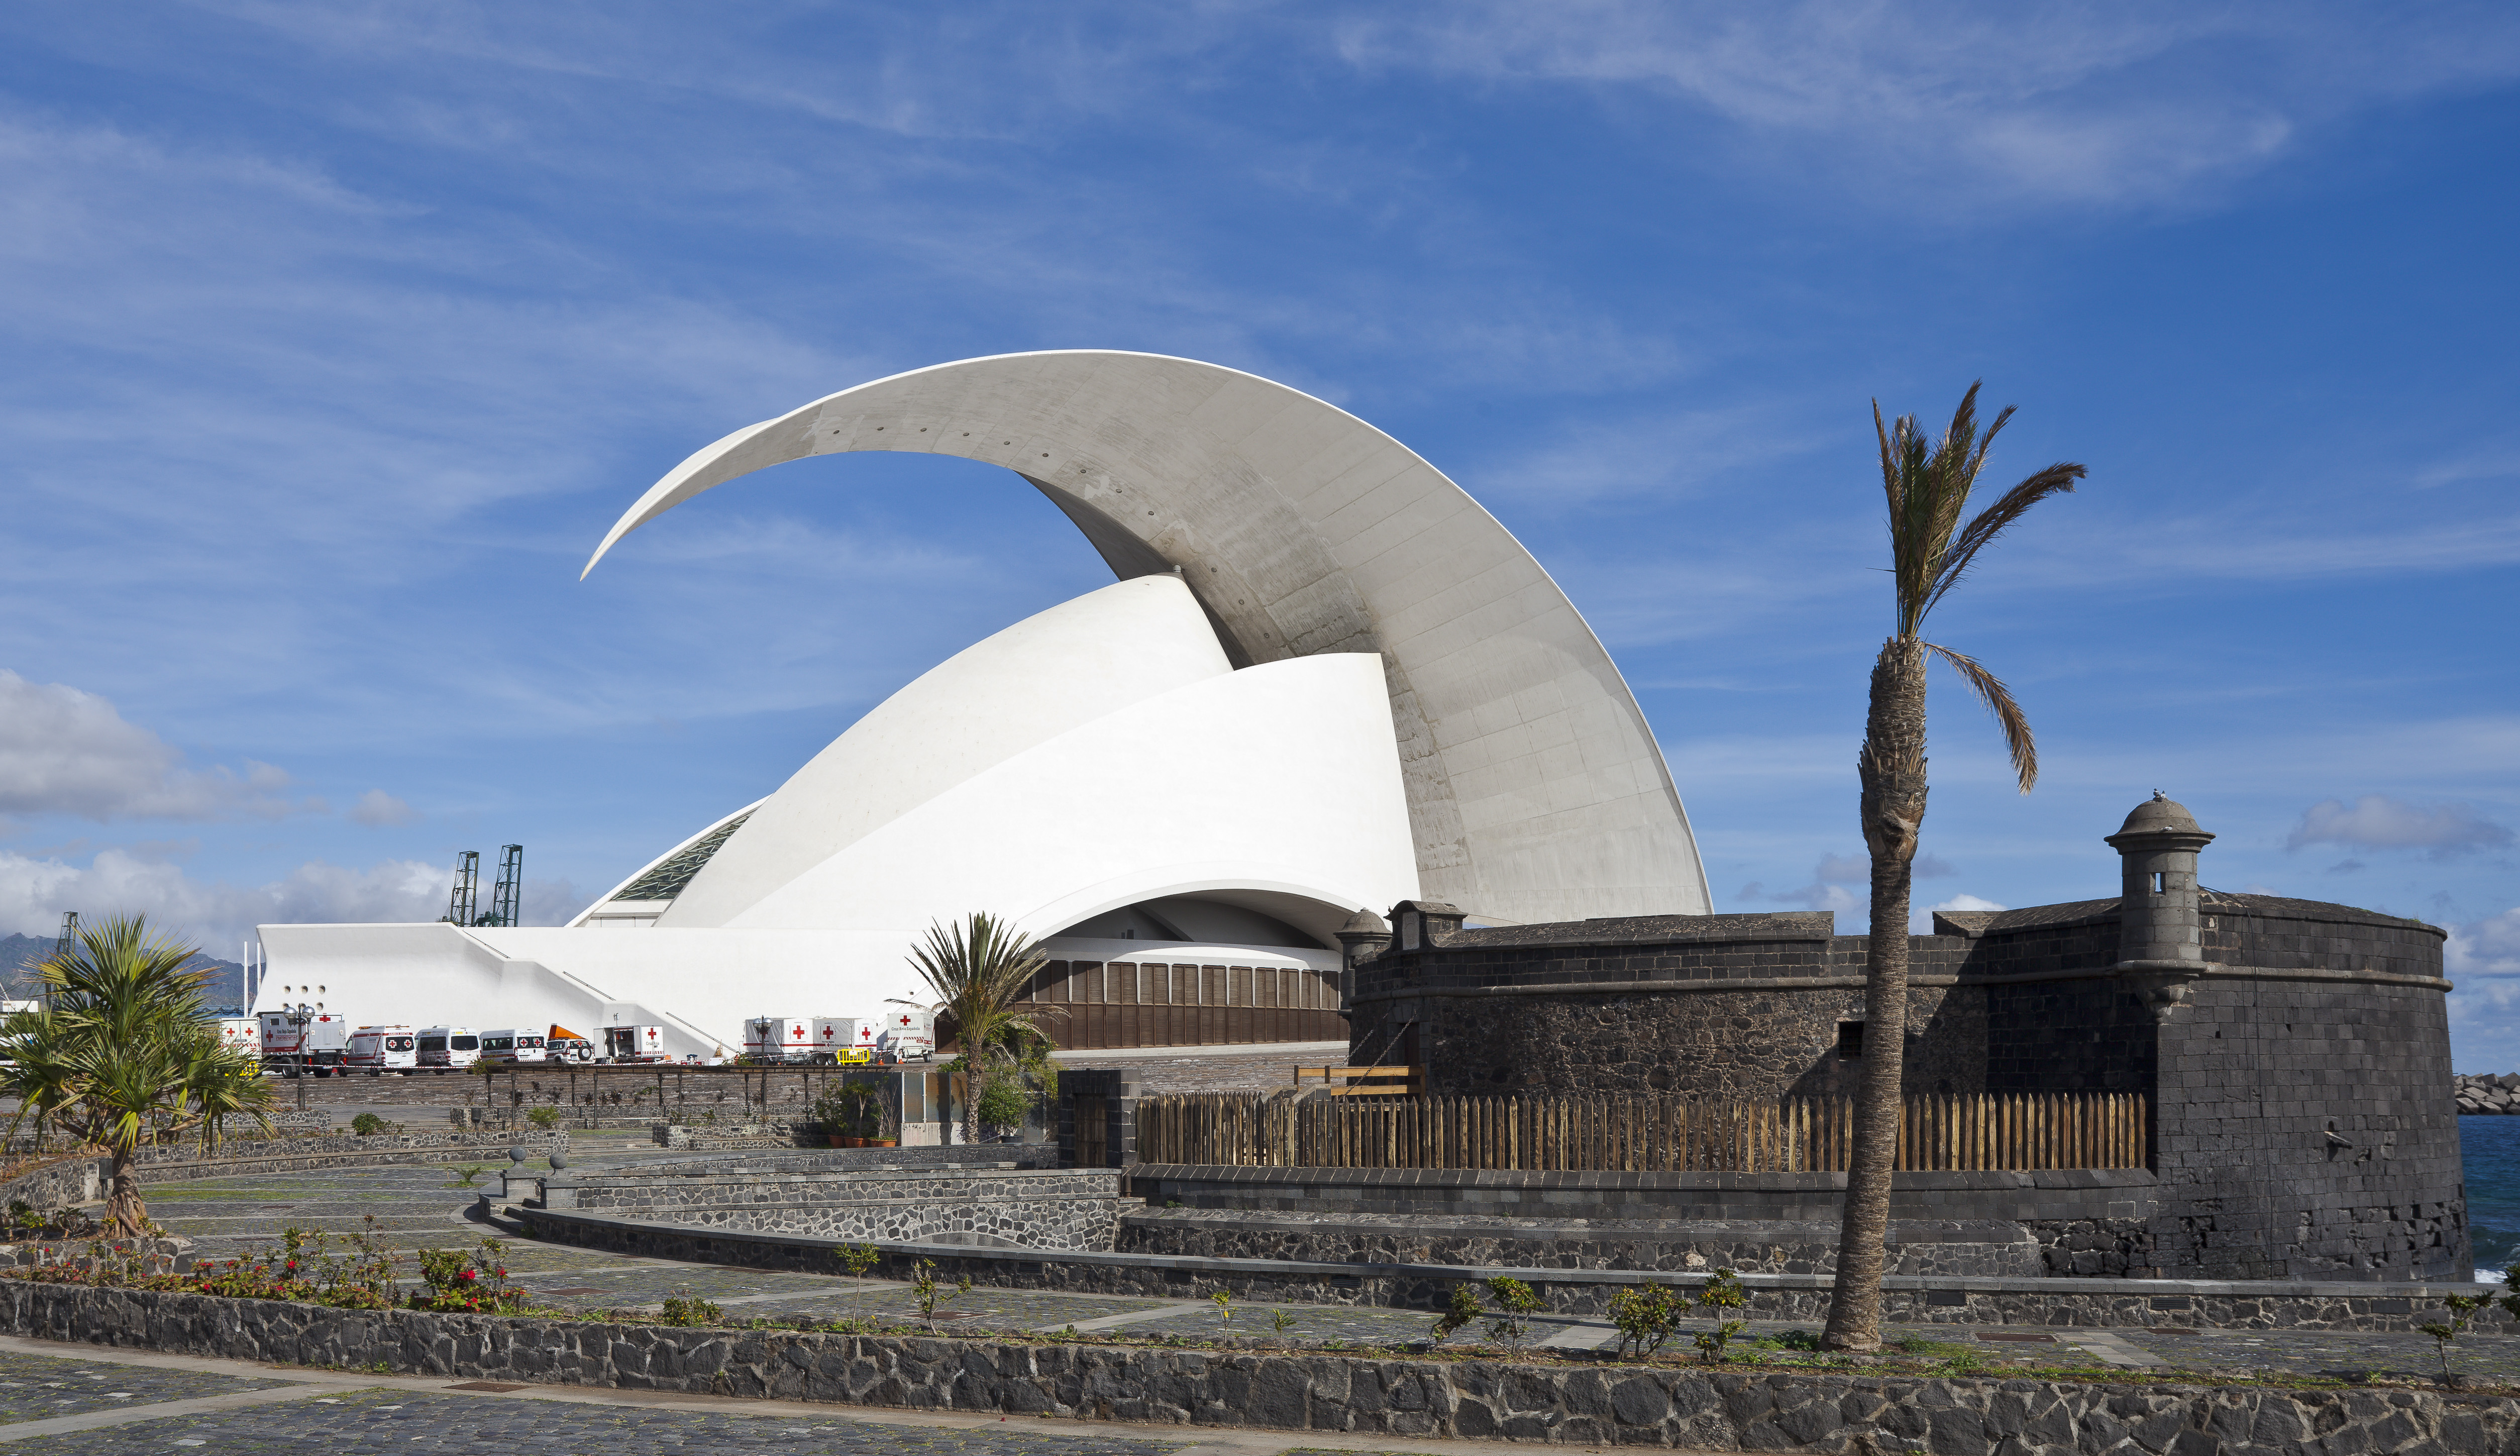 santa cruz de tenerife latin dating site The area on which now stands the city and the municipality of santa cruz de tenerife has been the subject of human occupation since the time of the guanches, approximately 2000 years ago, as attested by the archaeological sites found.